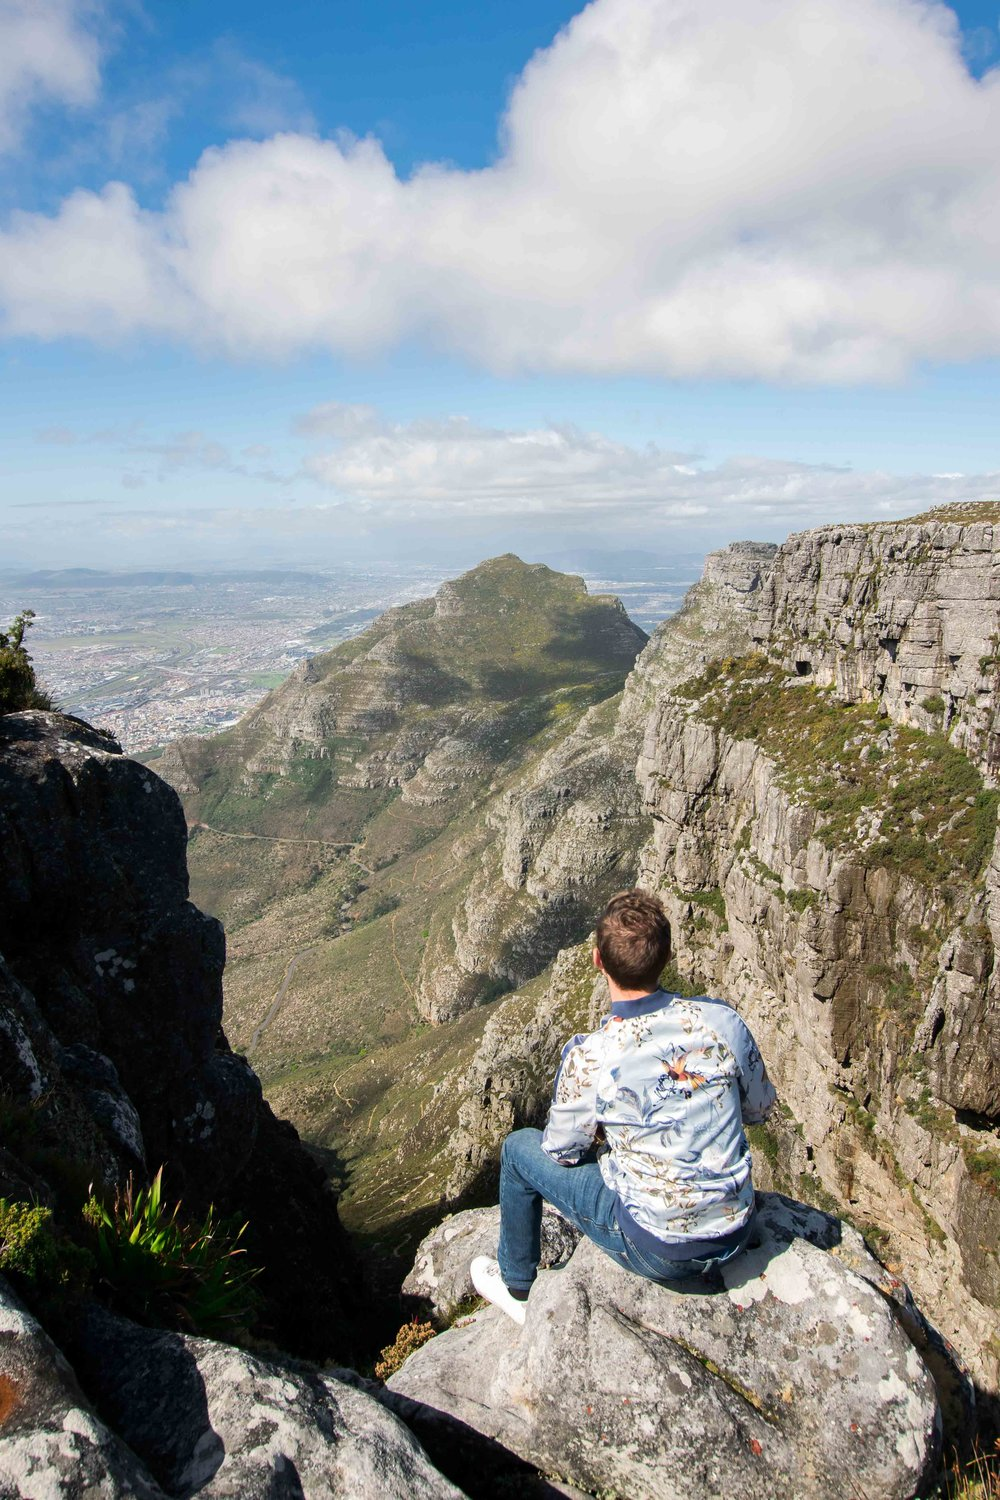 Hiking at the top of Table Mountain